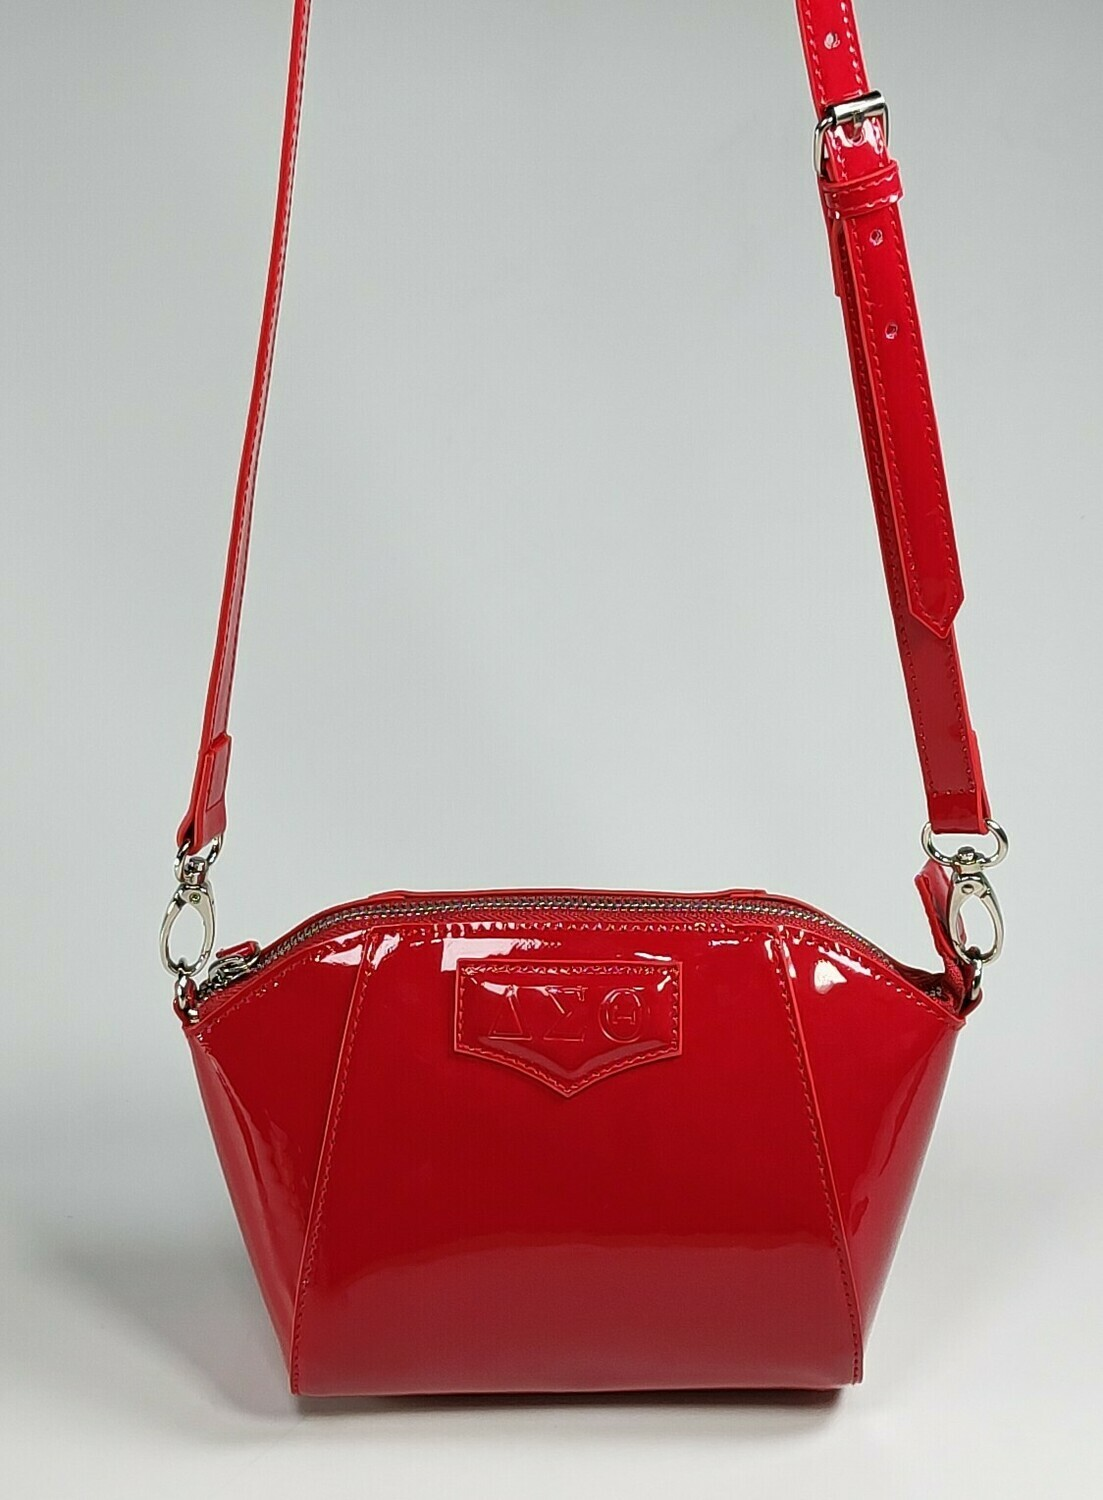 DST Red Patent Crossbody Bag - PRE ORDER Deliver Mid May 2021